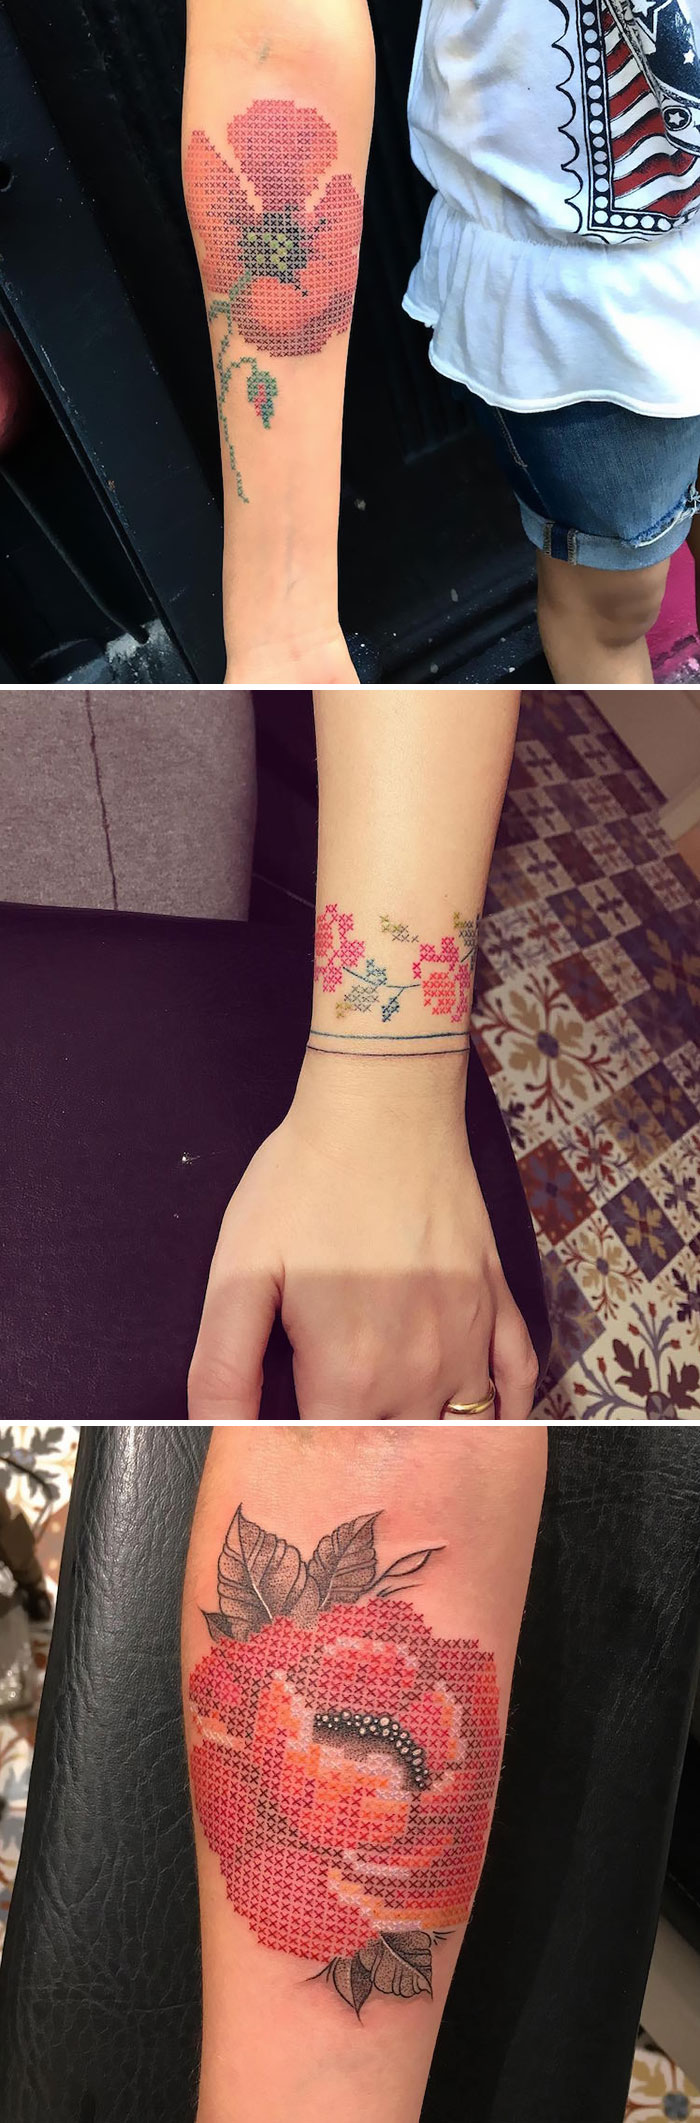 floral-tattoo-artists-4-58e254b0b0d2e__700